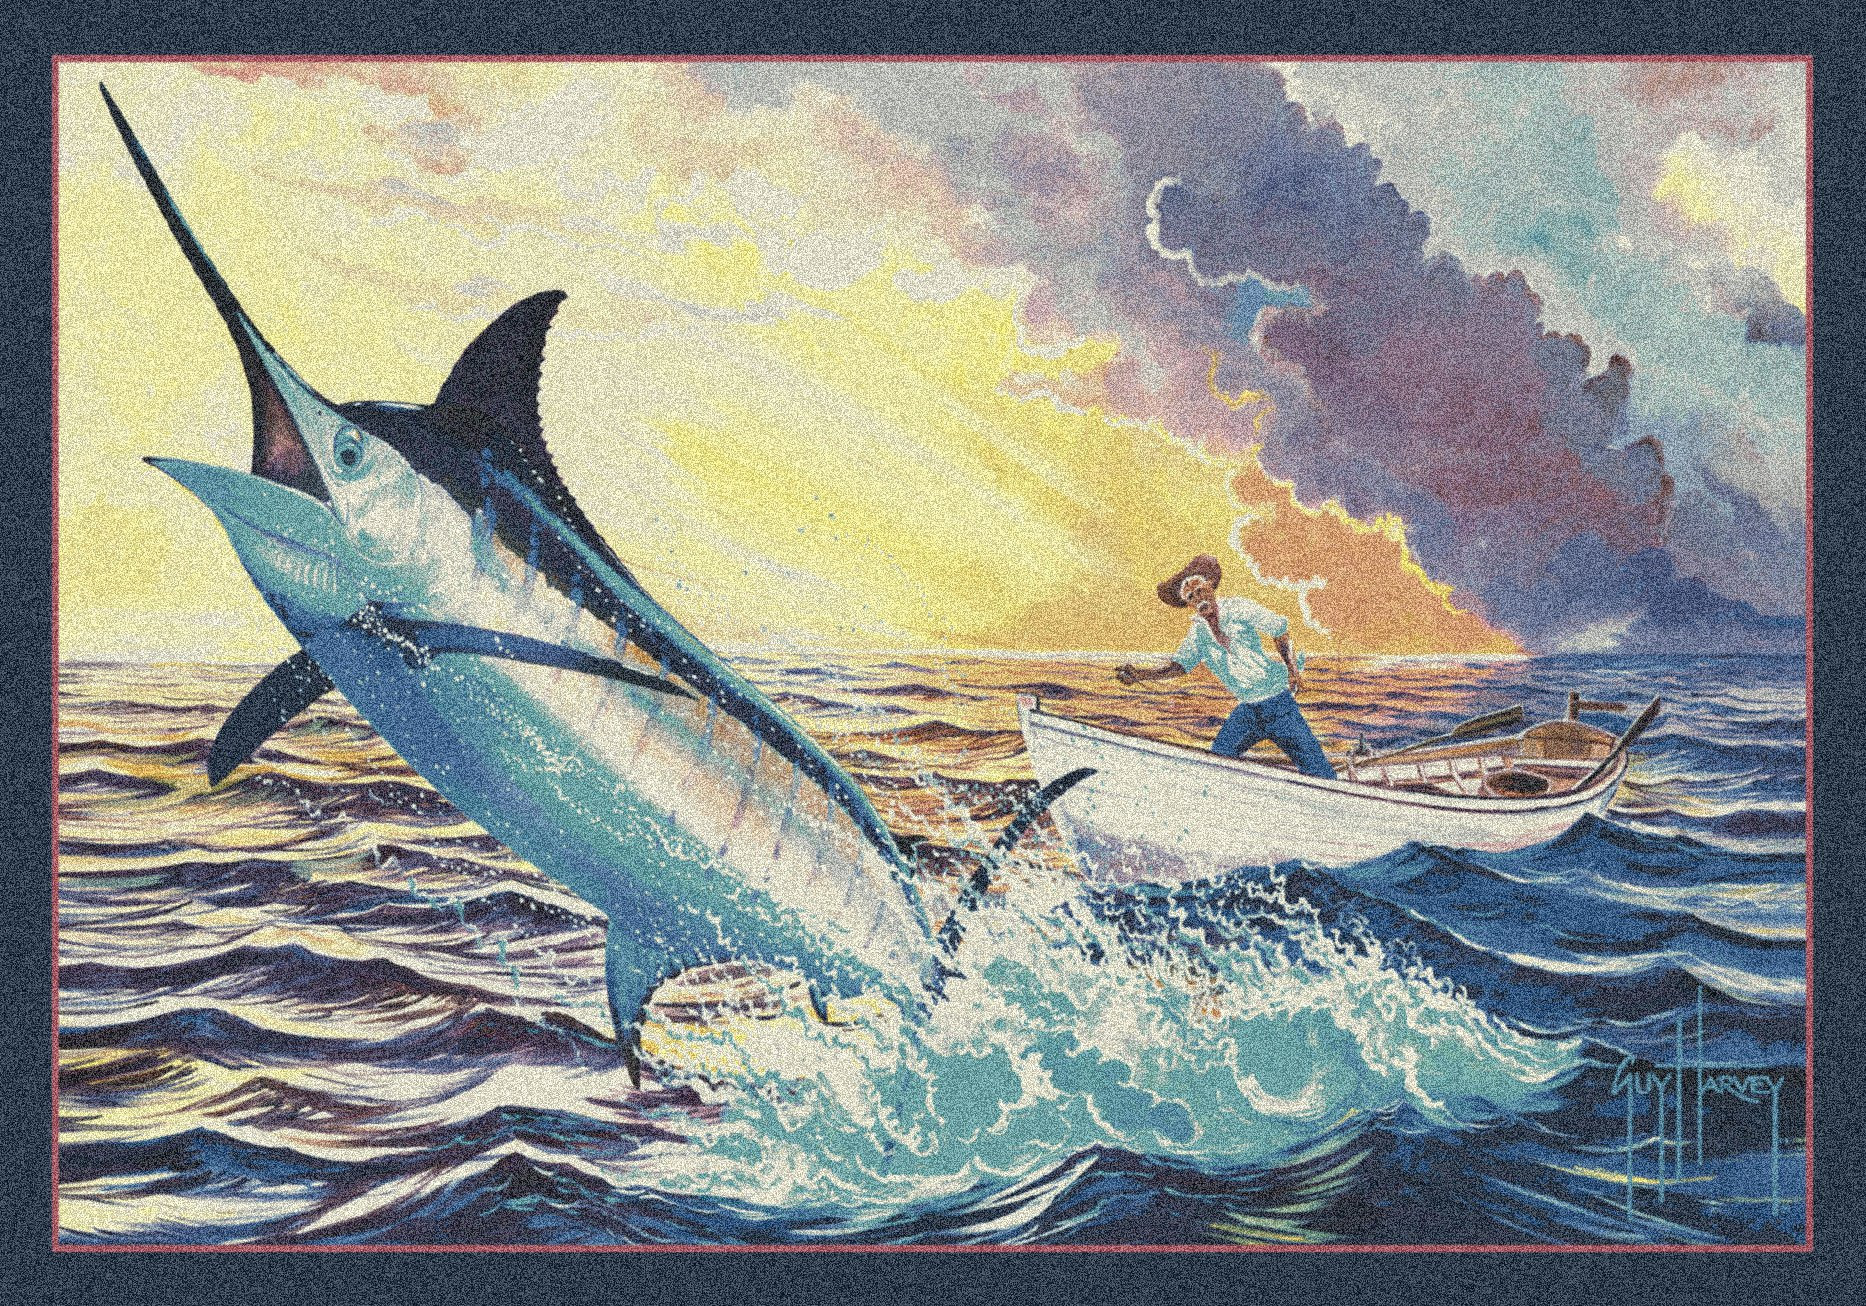 mydesignerrug.com||https://www.mydesignerrug.com/products/guy-harvey-old-man-and-the-sea-rug